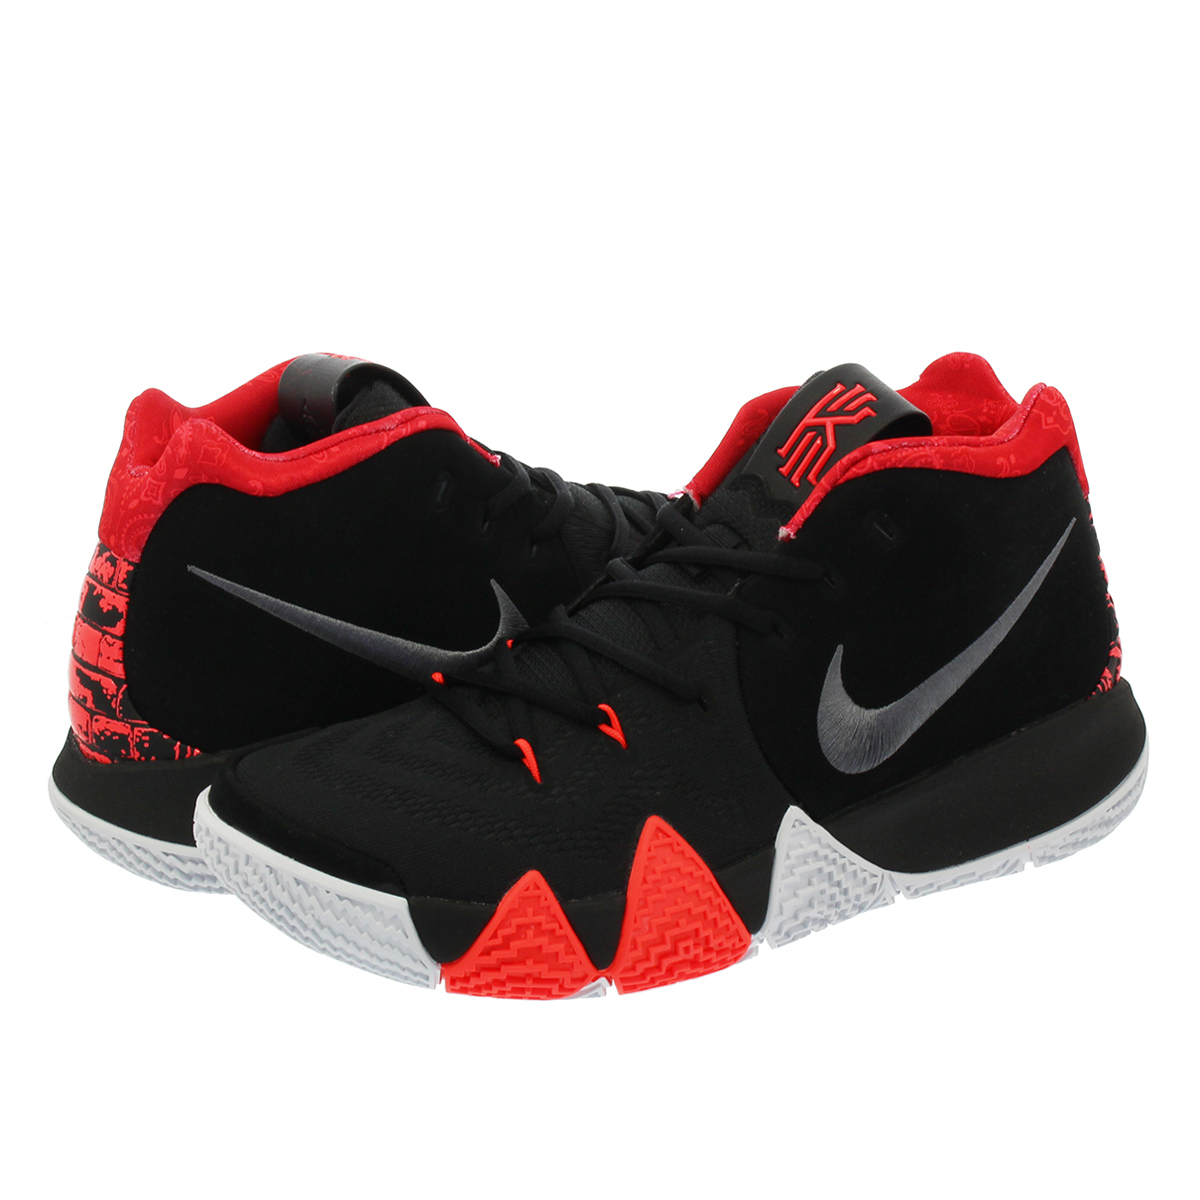 41305b34e5f8 SELECT SHOP LOWTEX  NIKE KYRIE 4 Nike chi Lee 4 BLACK UNIVERSITY RED ...